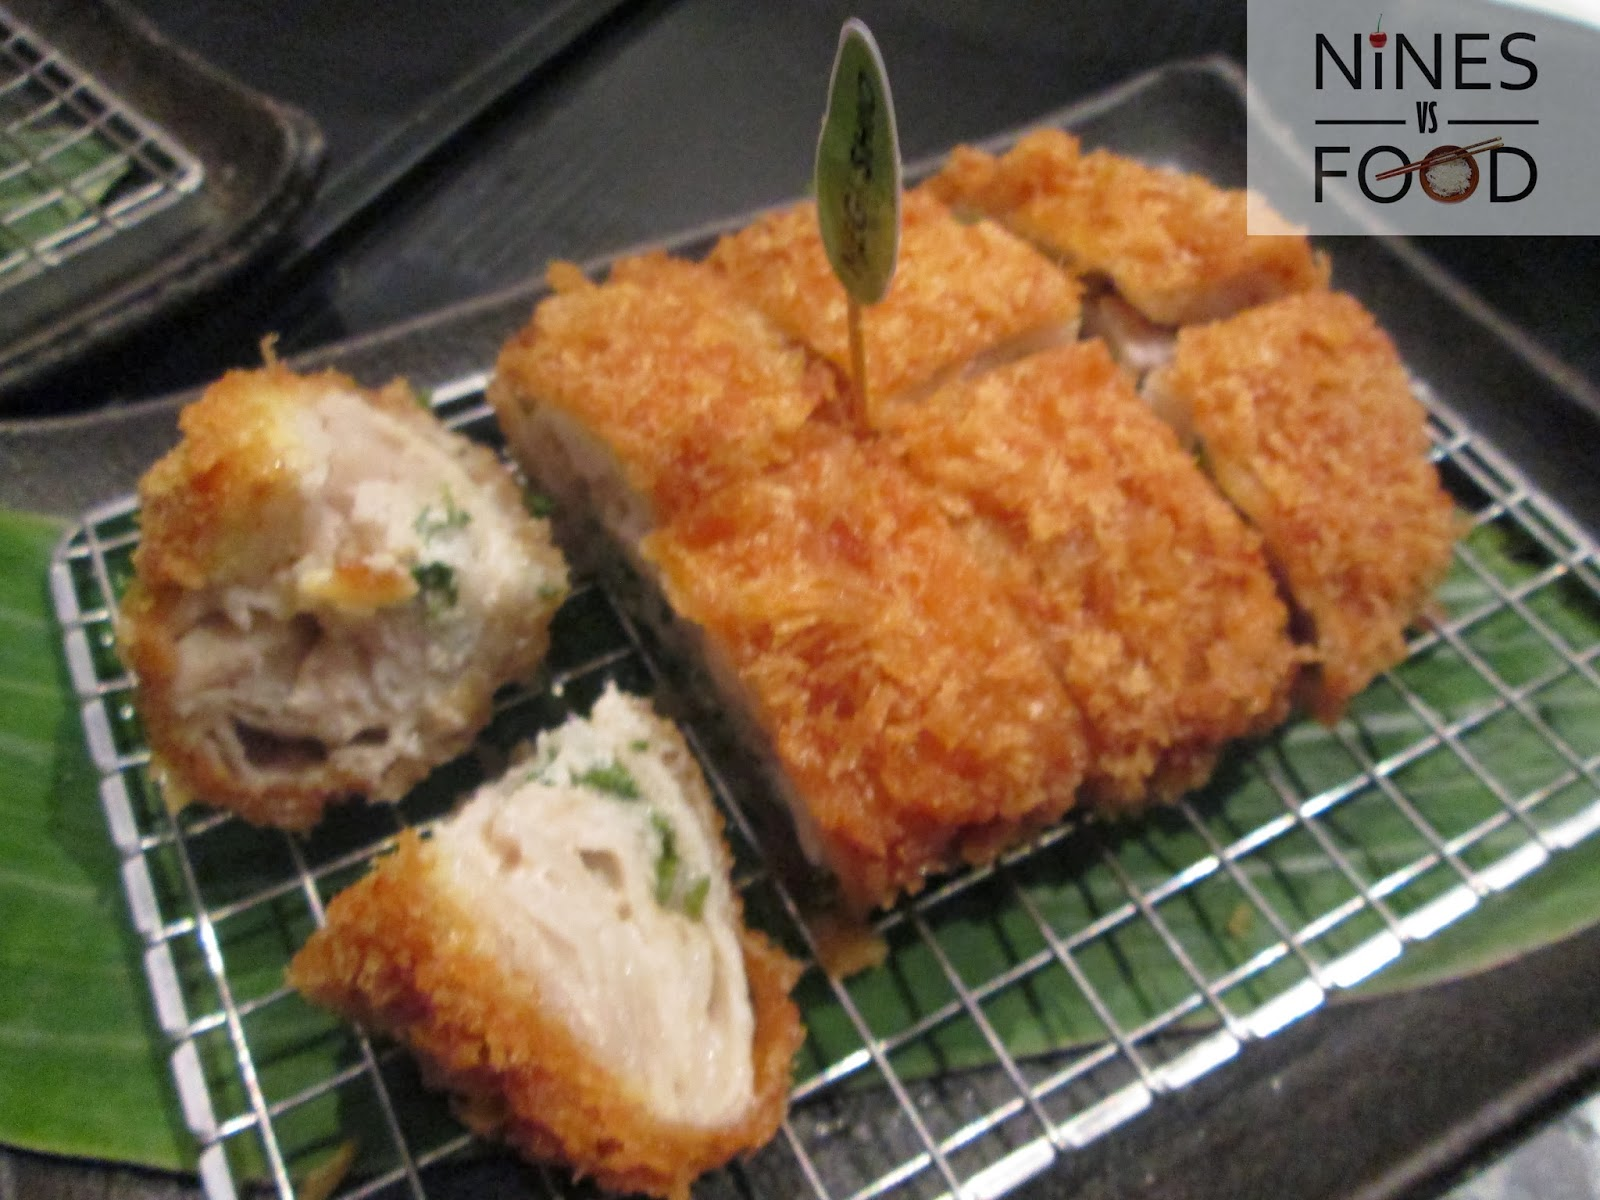 Nines vs. Food - Kimukatsu Manila Philippines-15.jpg